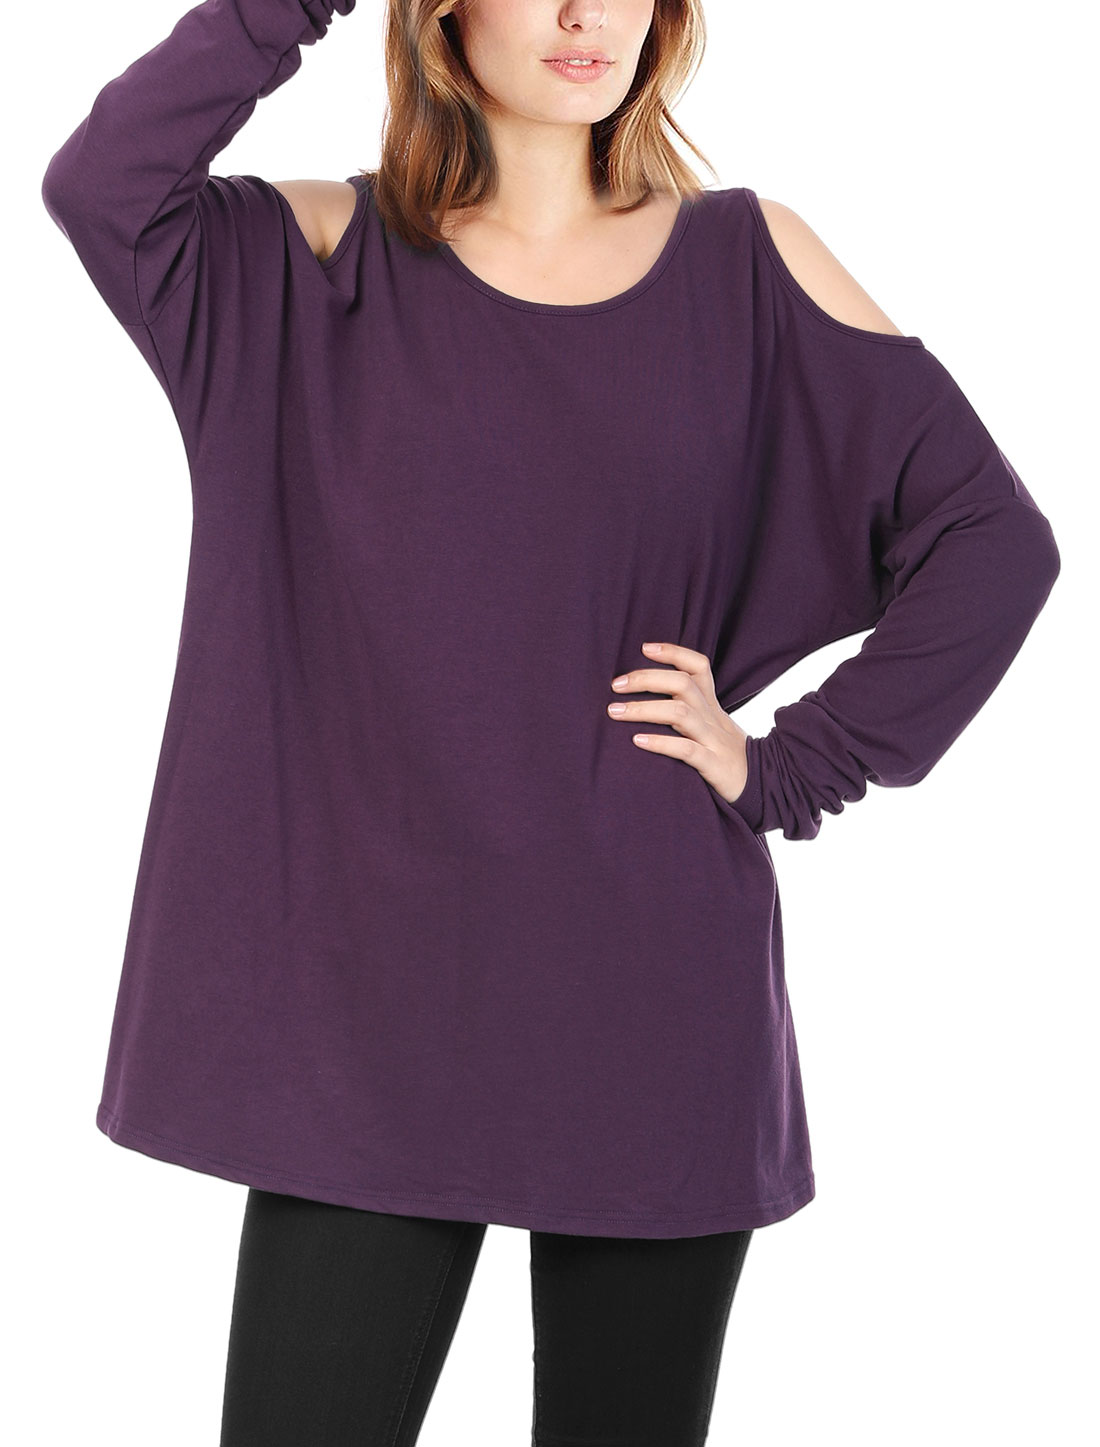 Ladies Cut Out Shoulder Oversized Tunic Top Purple S